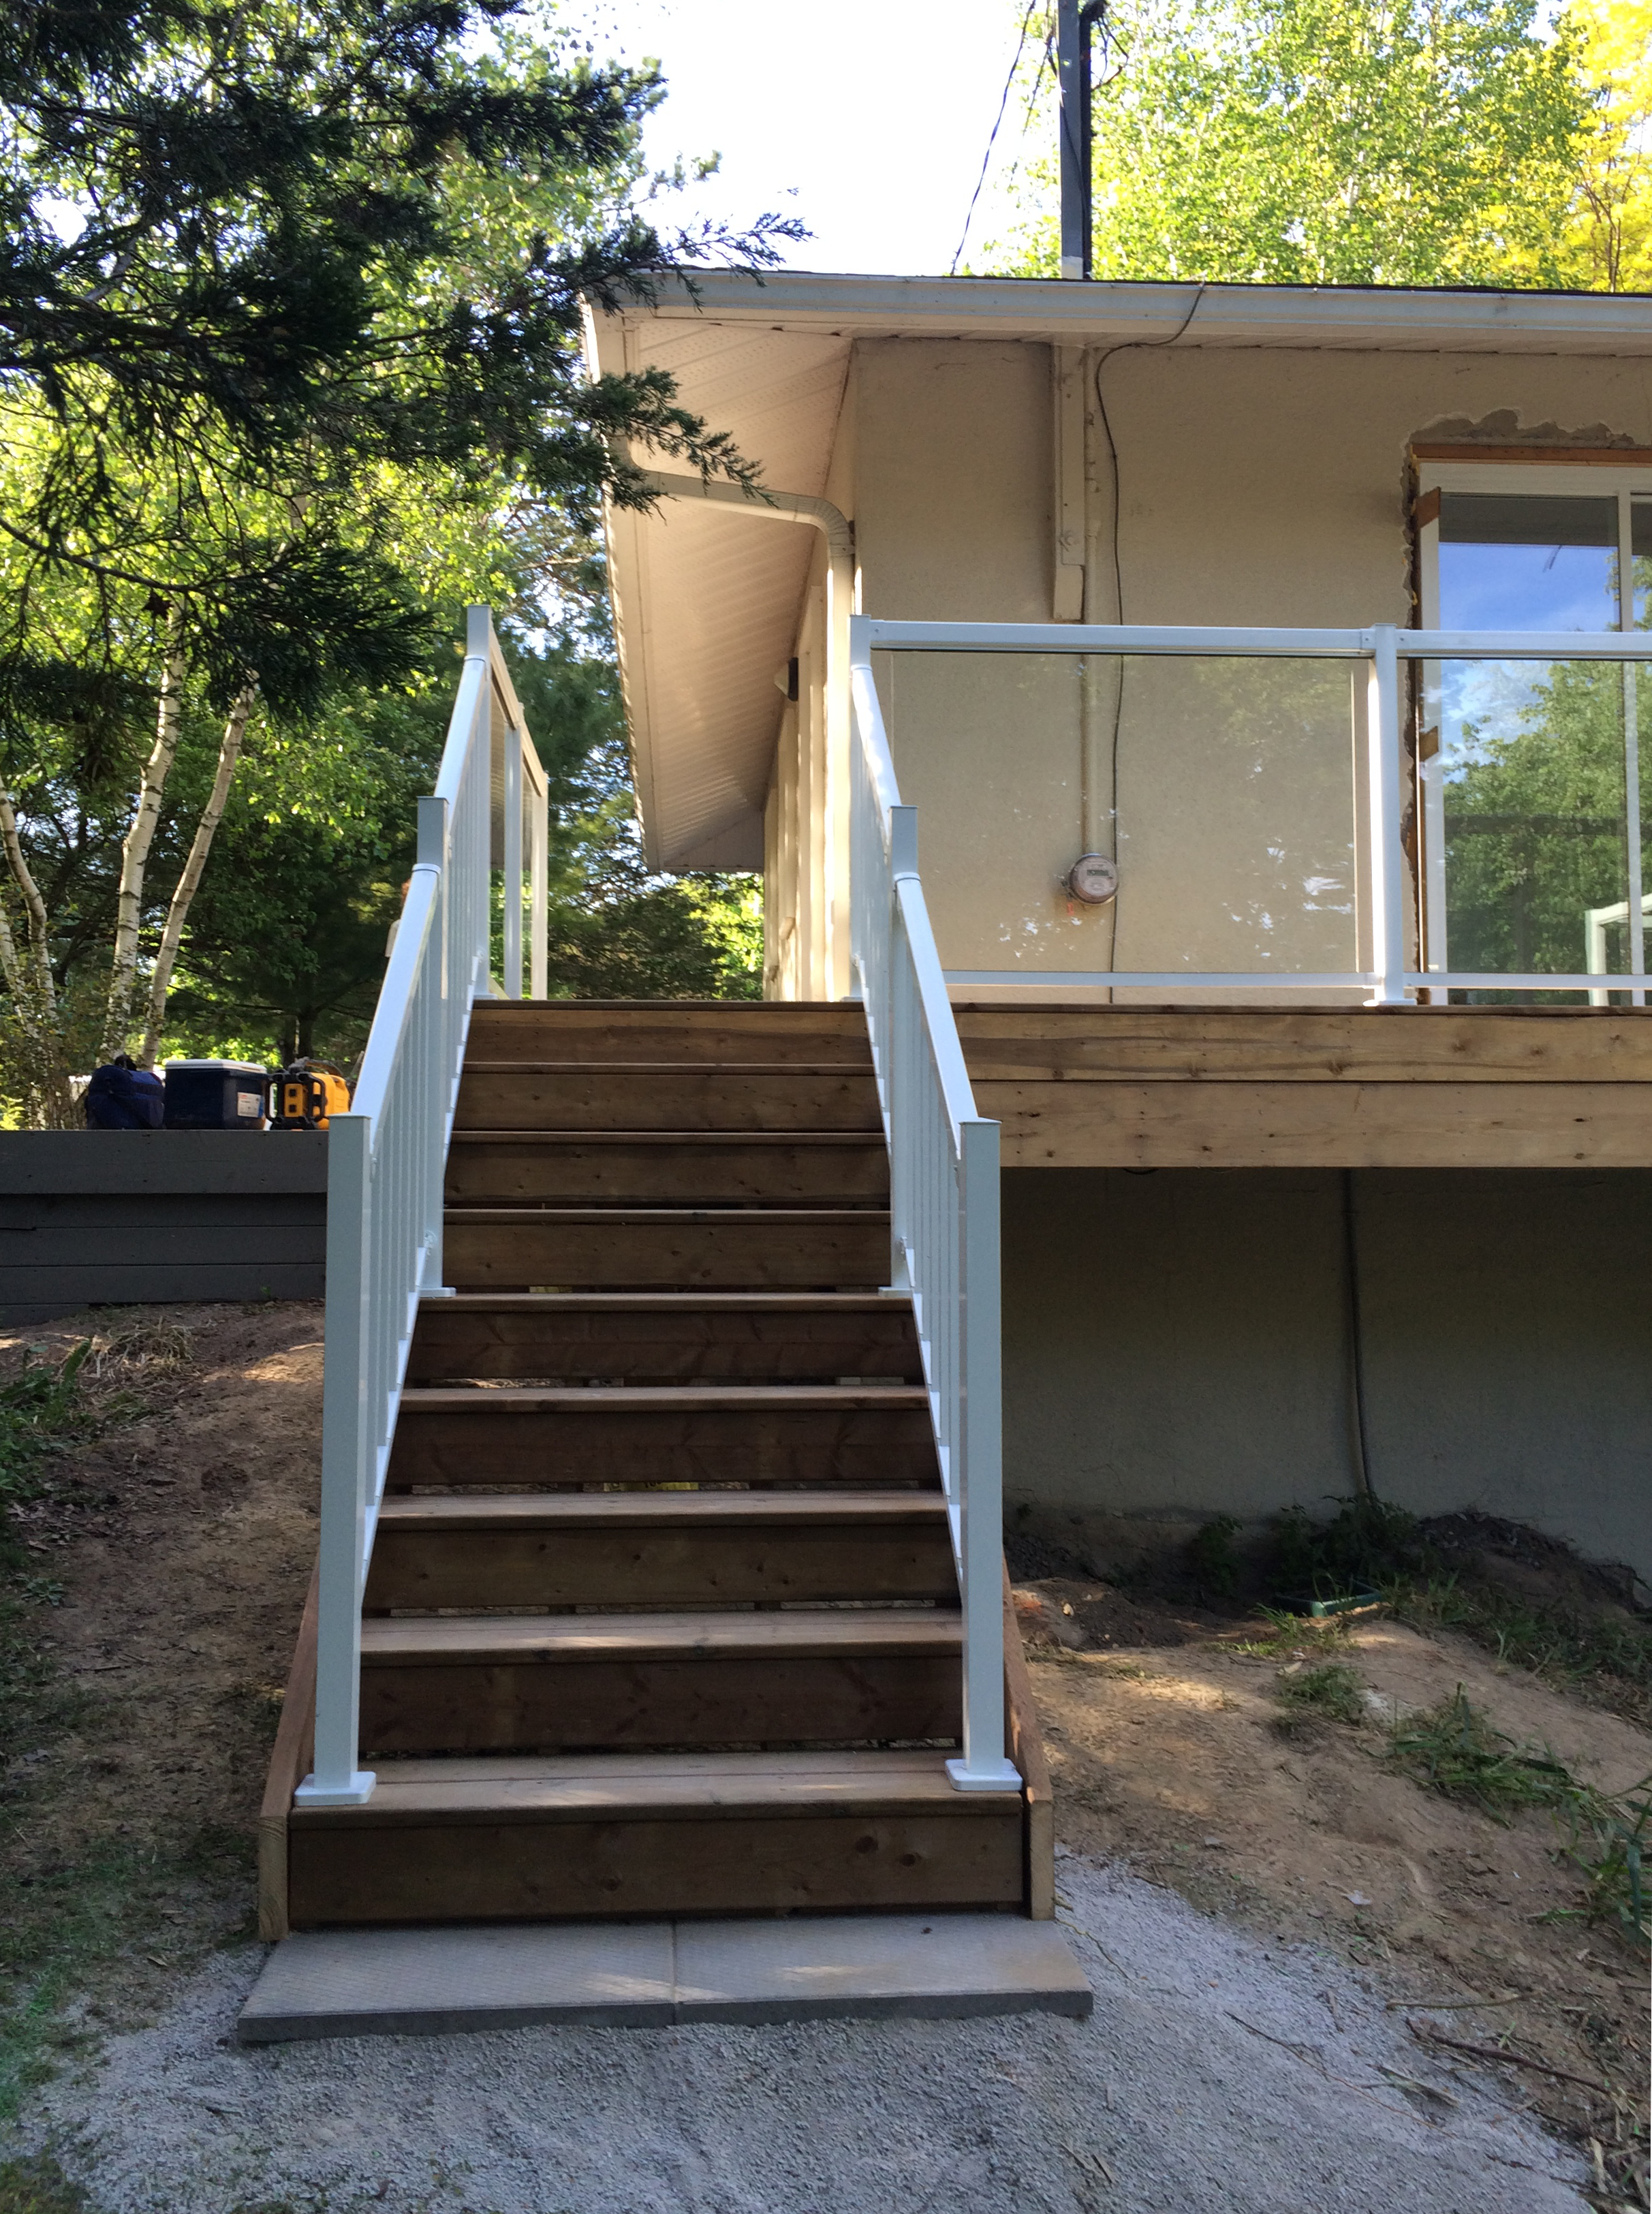 Sutton Deck - After Construction Stairs Front View